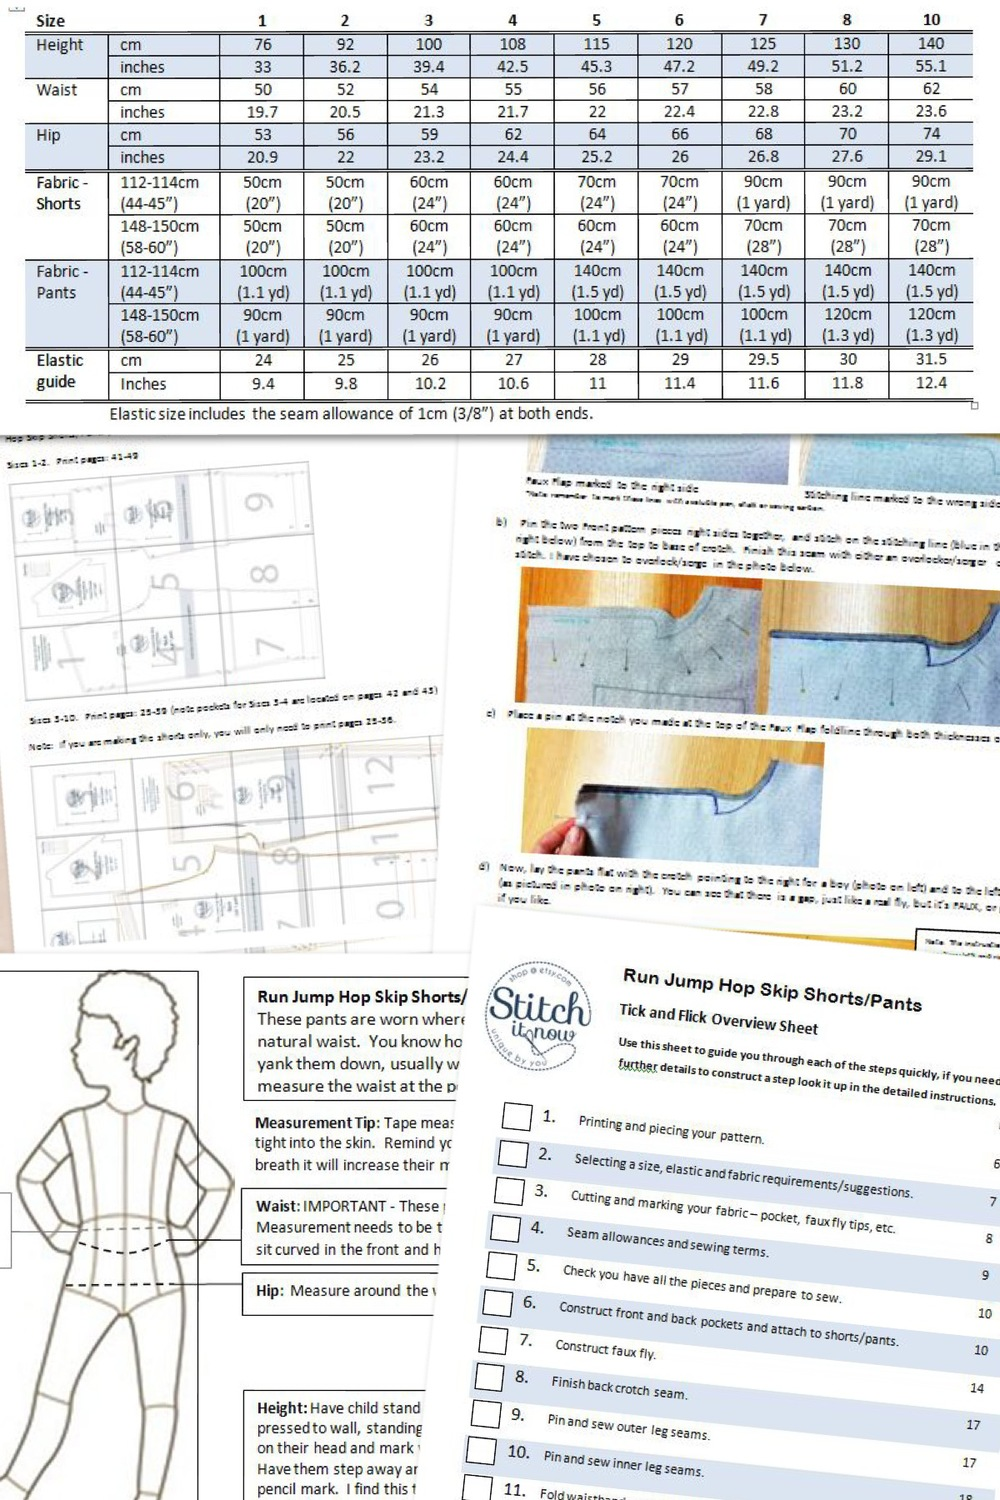 These are just some of the instructions you'll find in the Run Jump Hop Skip Shorts/Pants Pattern.